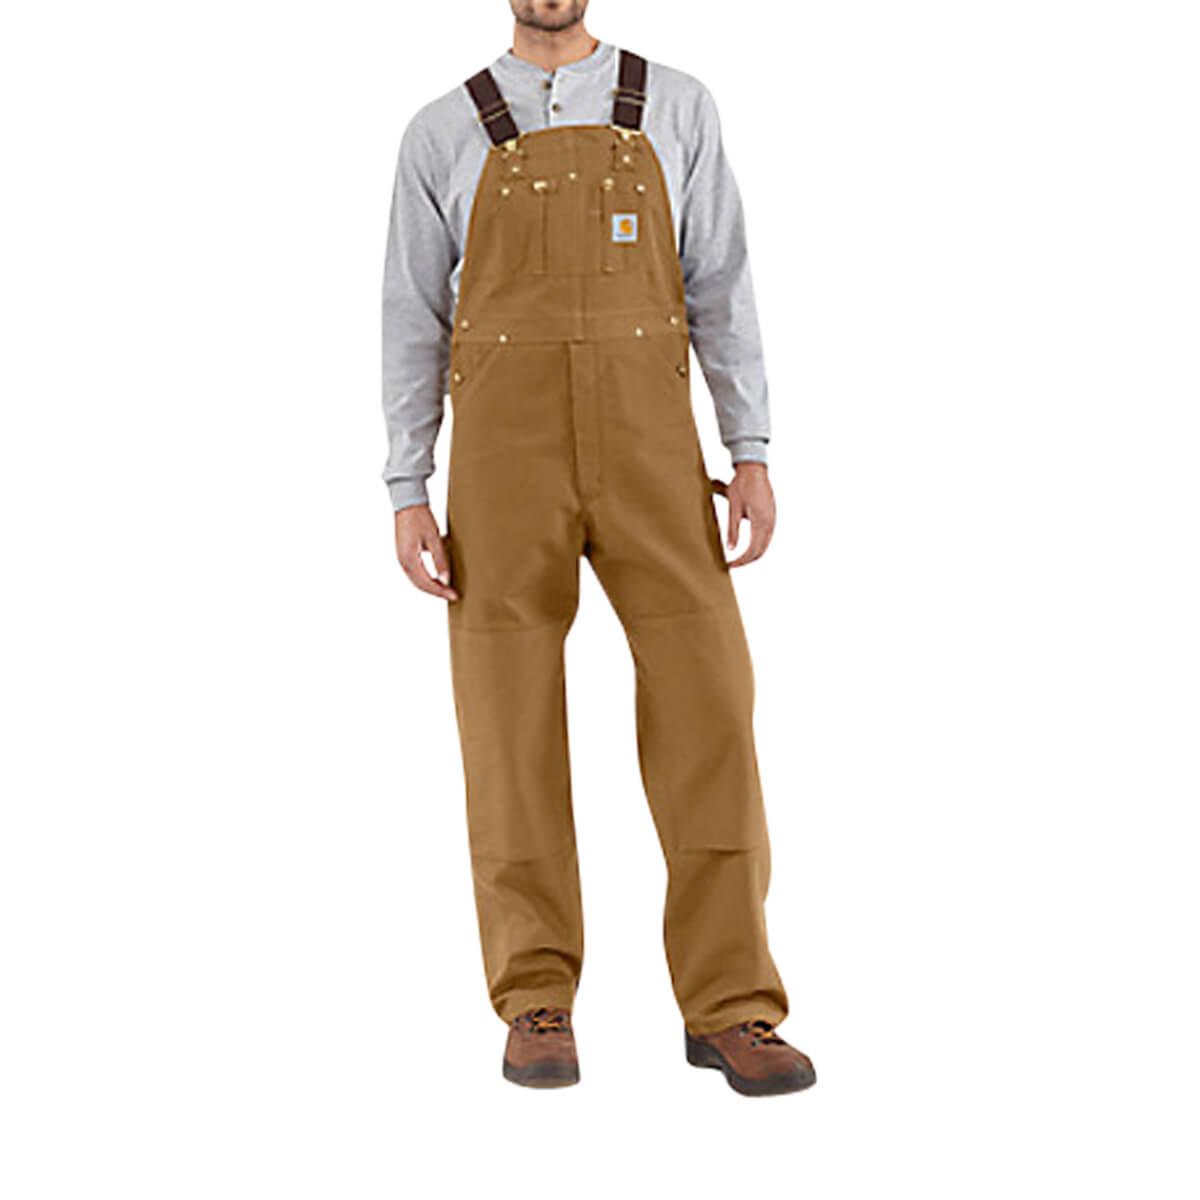 Carhartt Men's Duck Bib Overall/Unlined